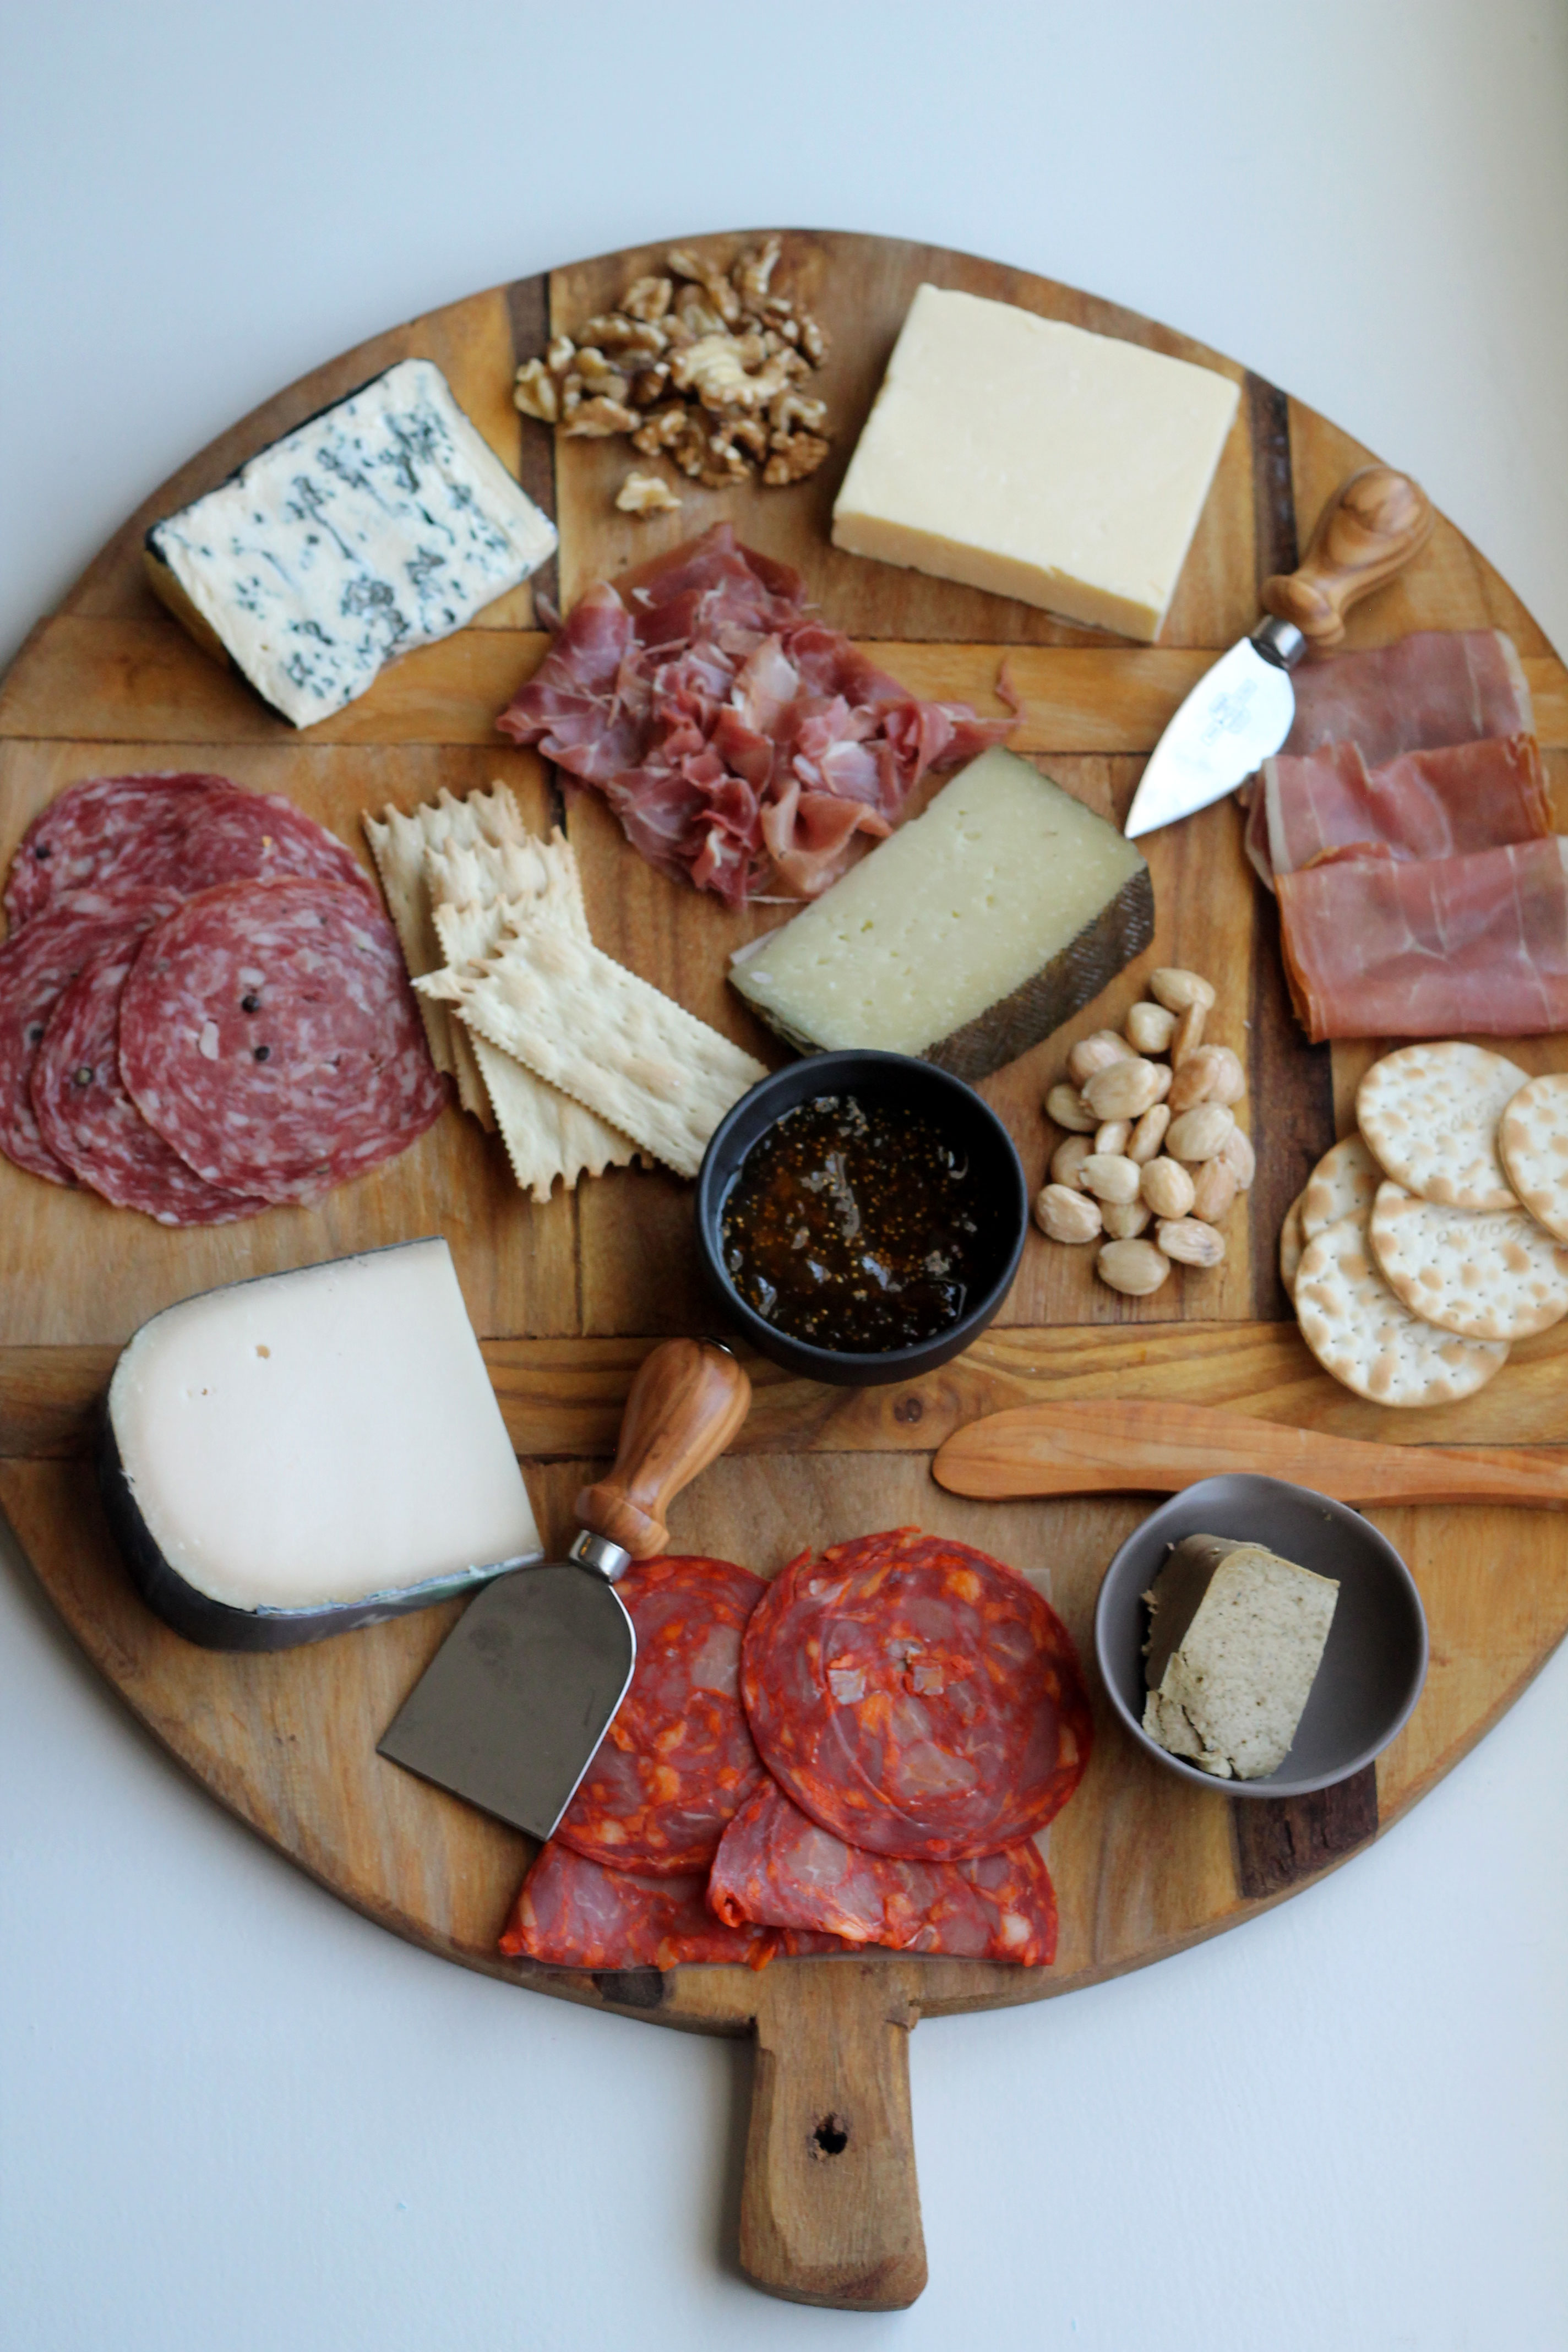 How to assemble the perfect cheese and charcuterie board